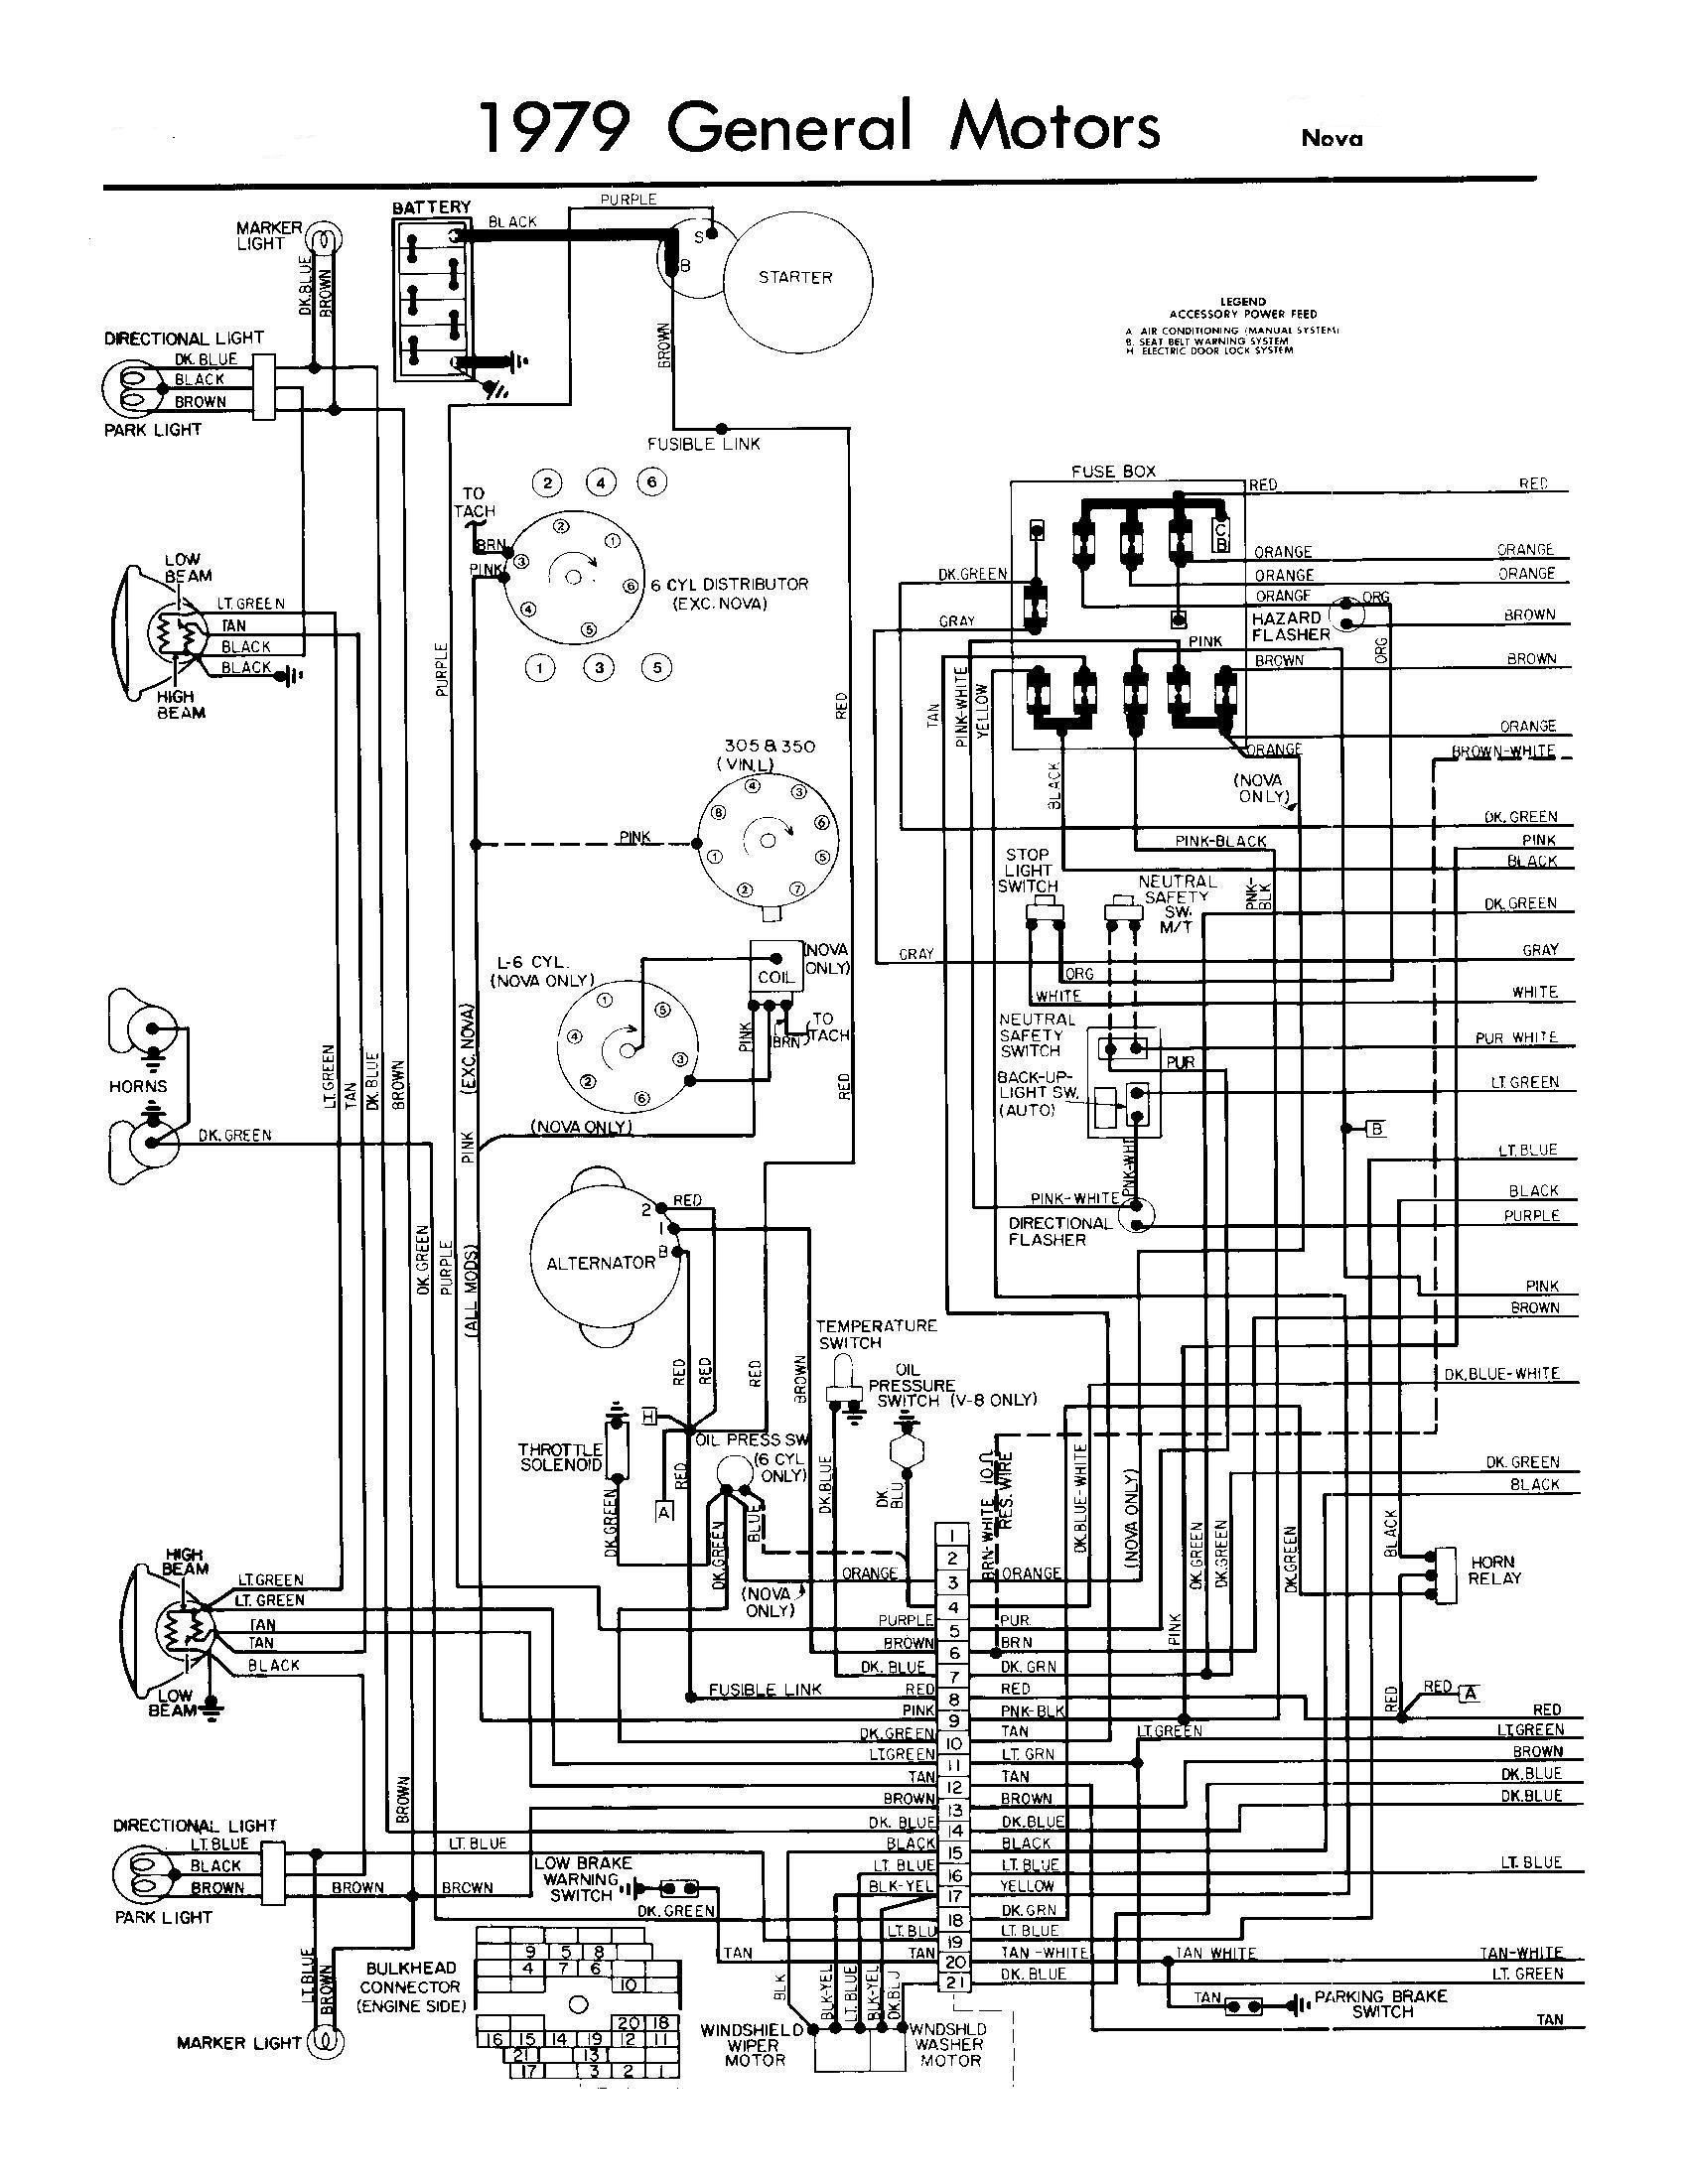 2000 chevy blazer vacuum line diagram on daihatsu vacuum diagram